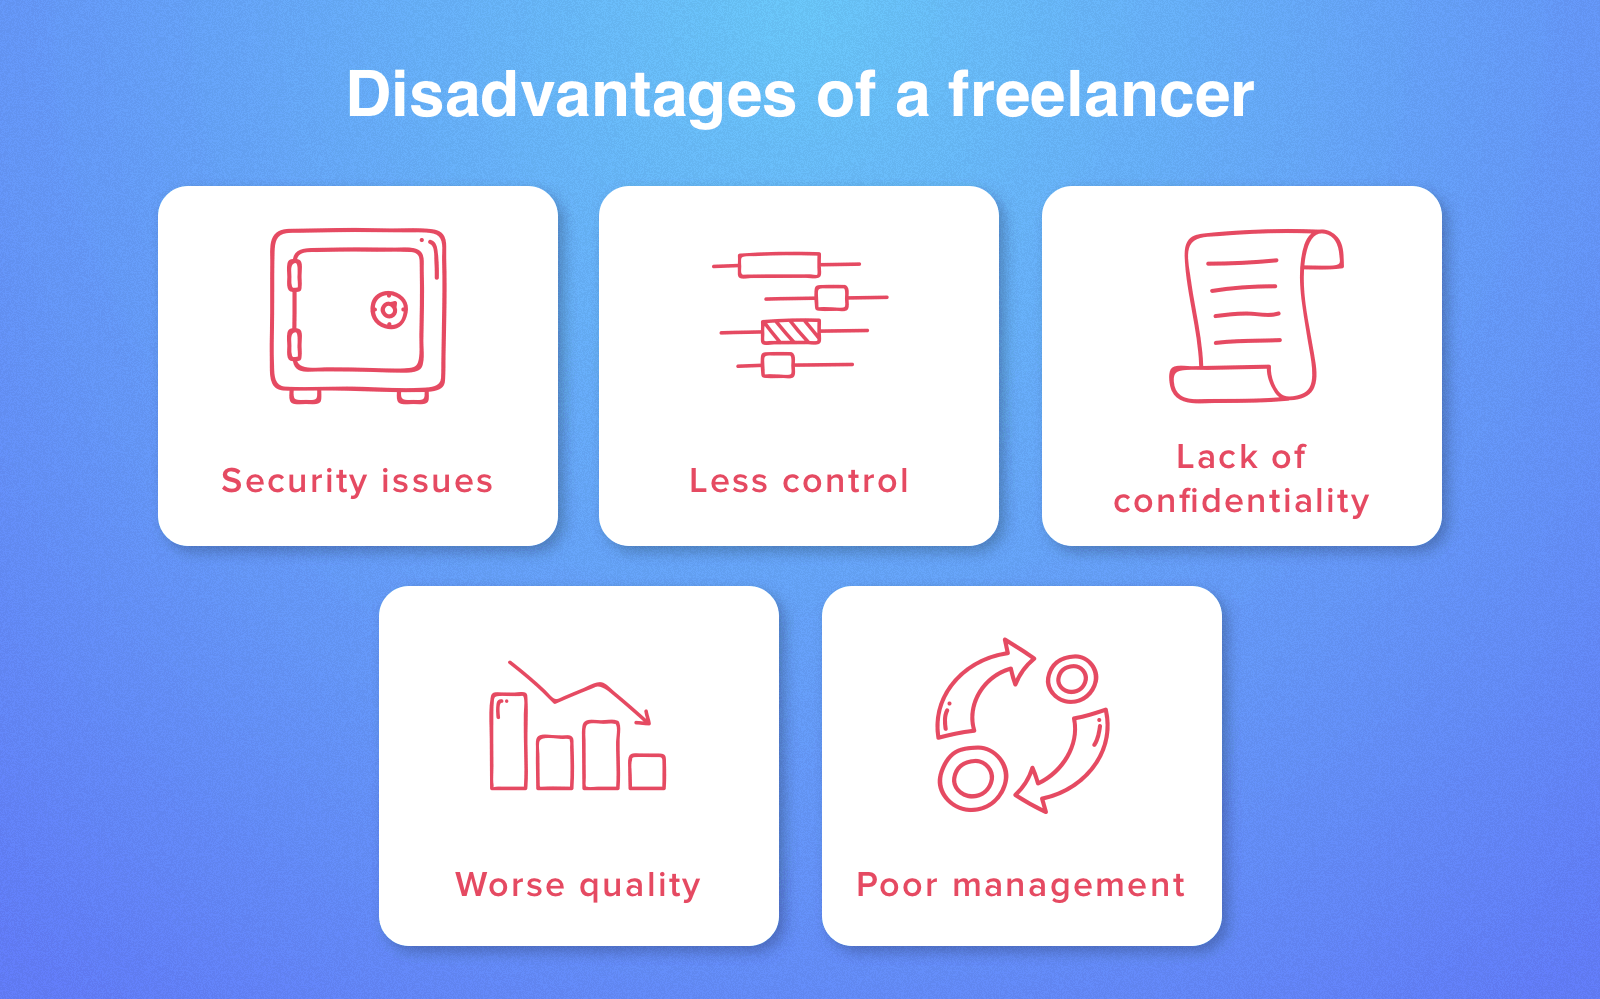 hire freelancers - disadvantages